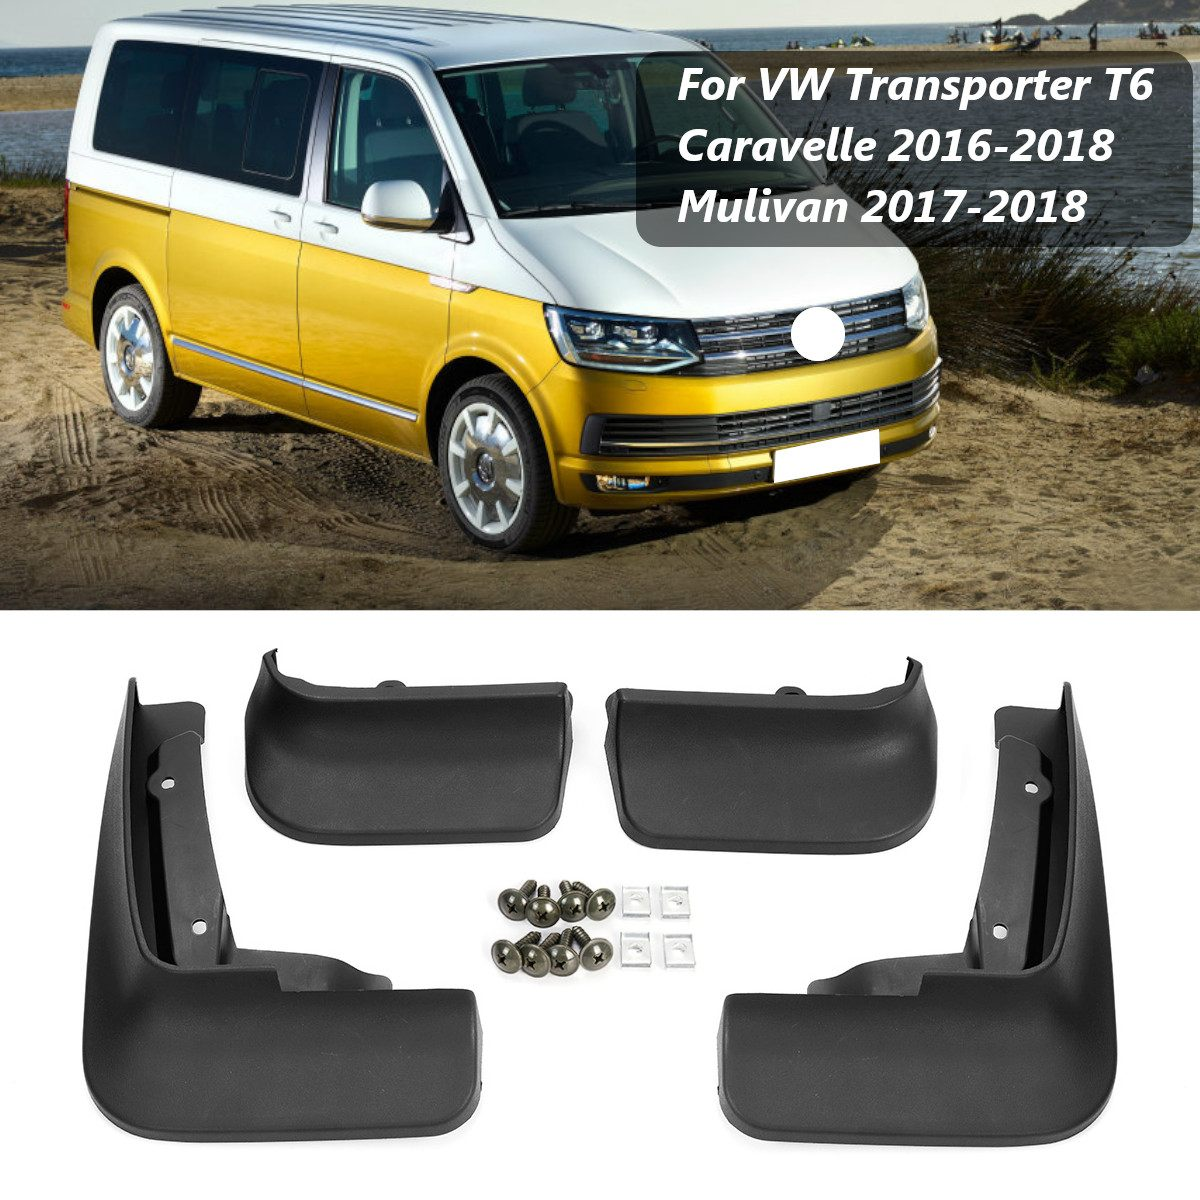 Car Mud Flaps Splash Guards for Fender Mudflaps Mudguards For VW Transporter T6 Caravelle 2016 2017